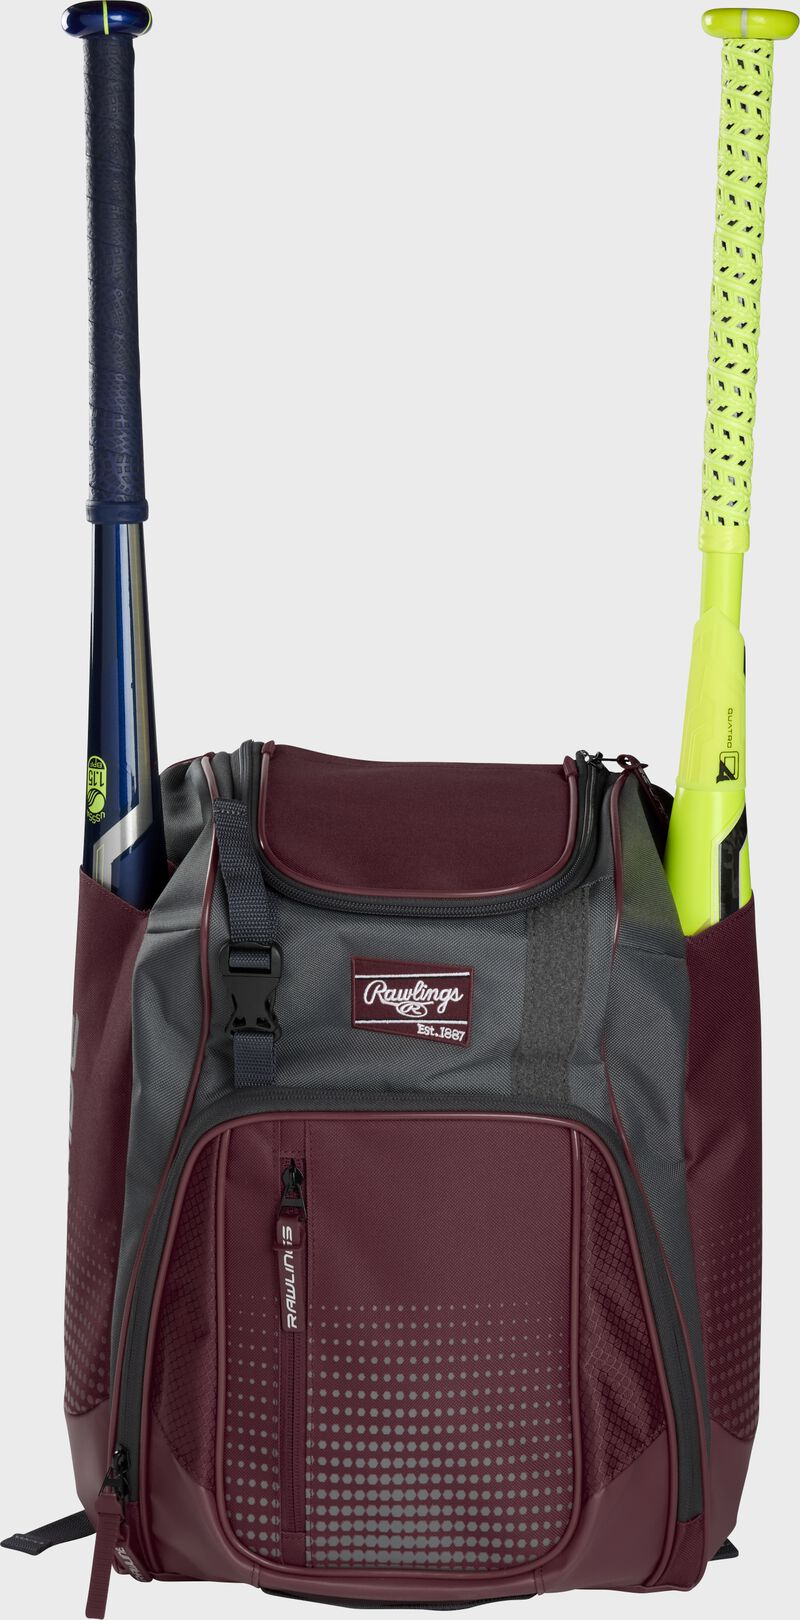 Front of a maroon Rawlings Franchise baseball backpack with two bats in the side sleeves - SKU: FRANBP-MA